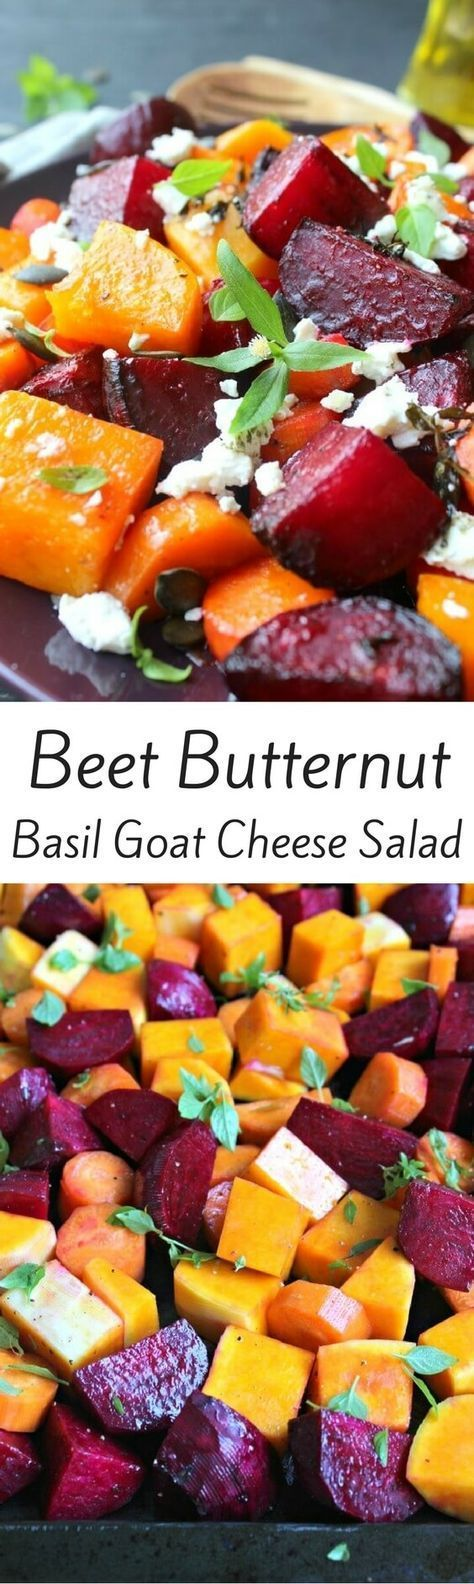 Roast Beet Butternut Basil Goat Cheese Salad